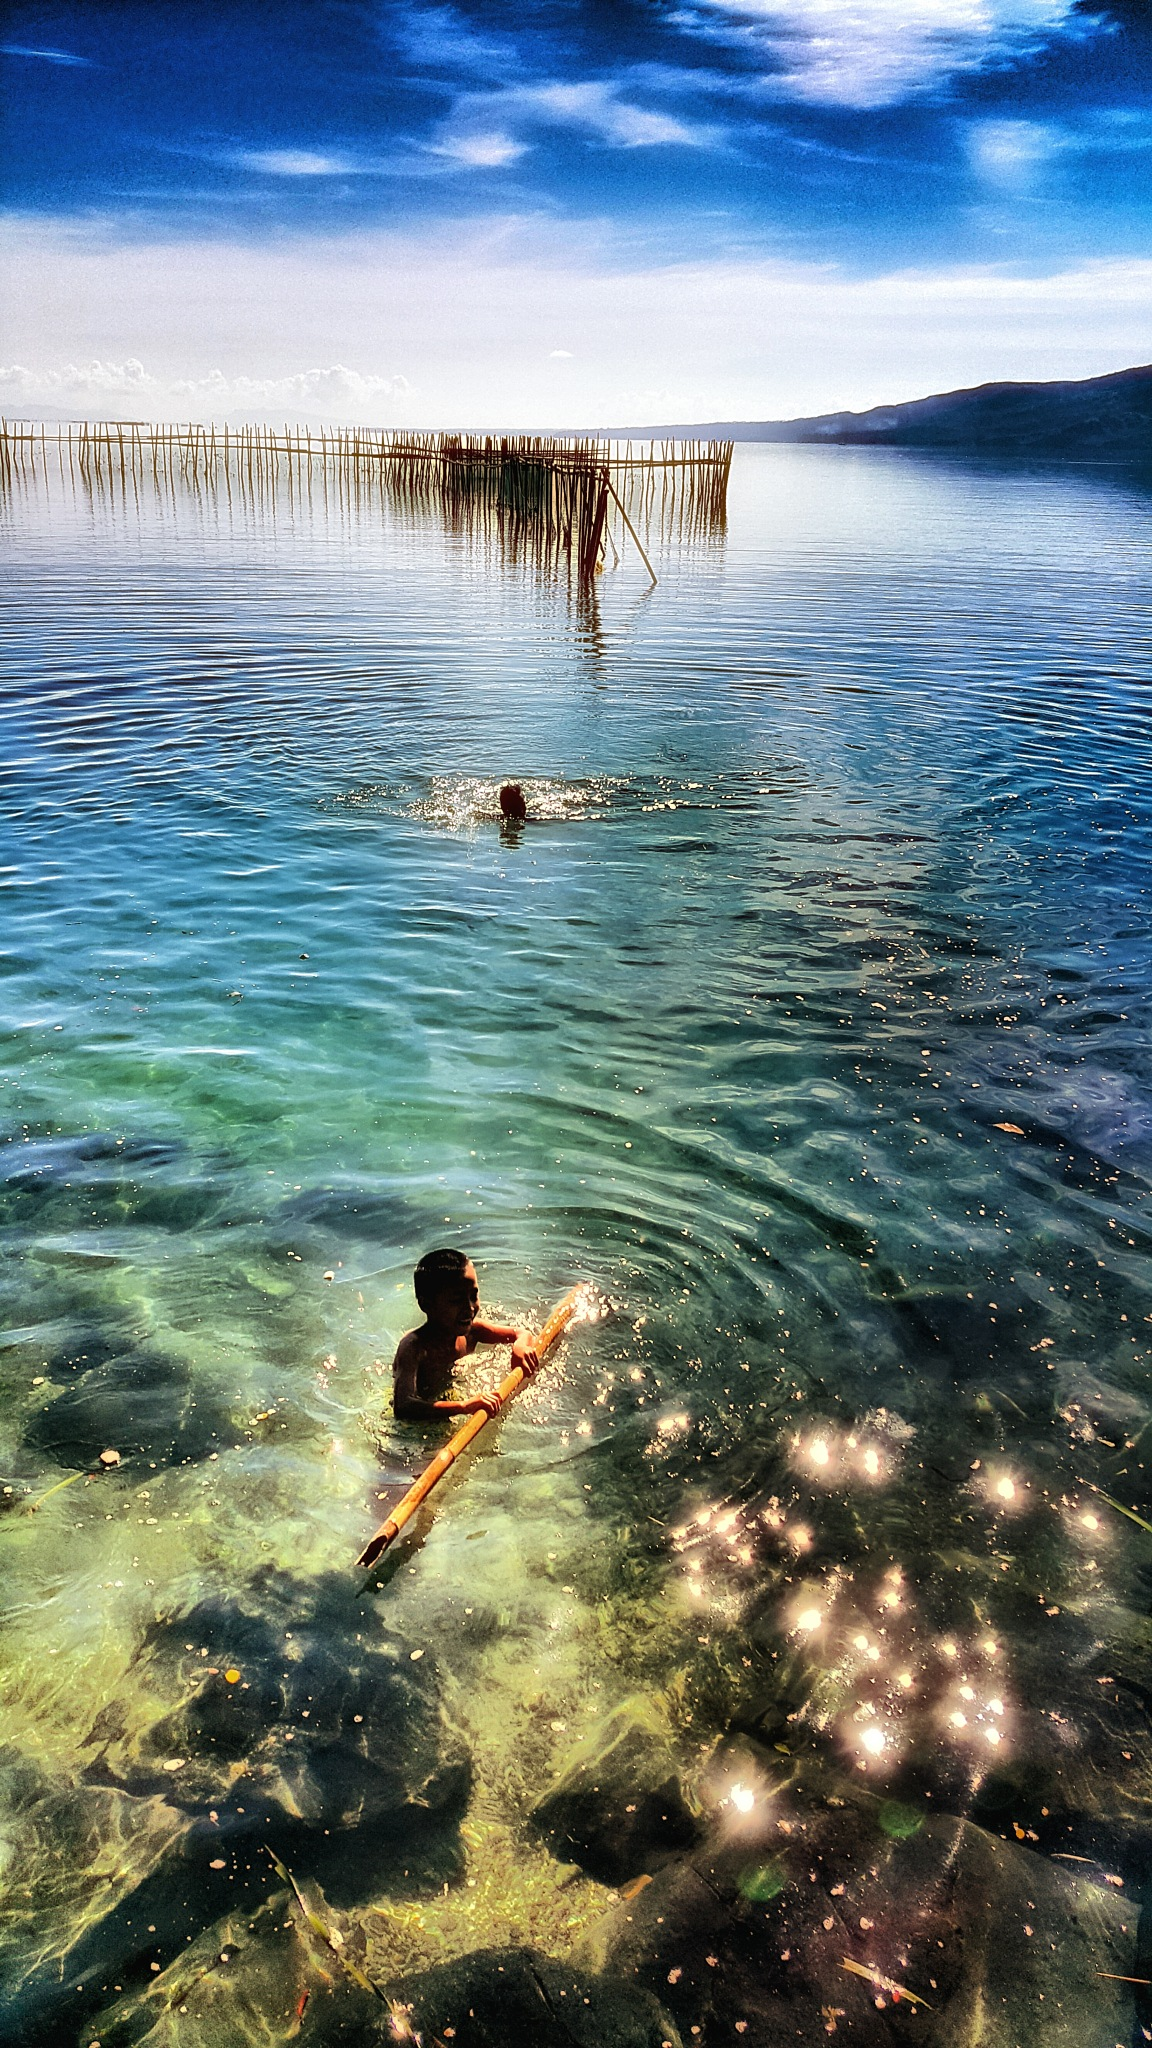 The waters of Bagacay by Natz M. Alcera